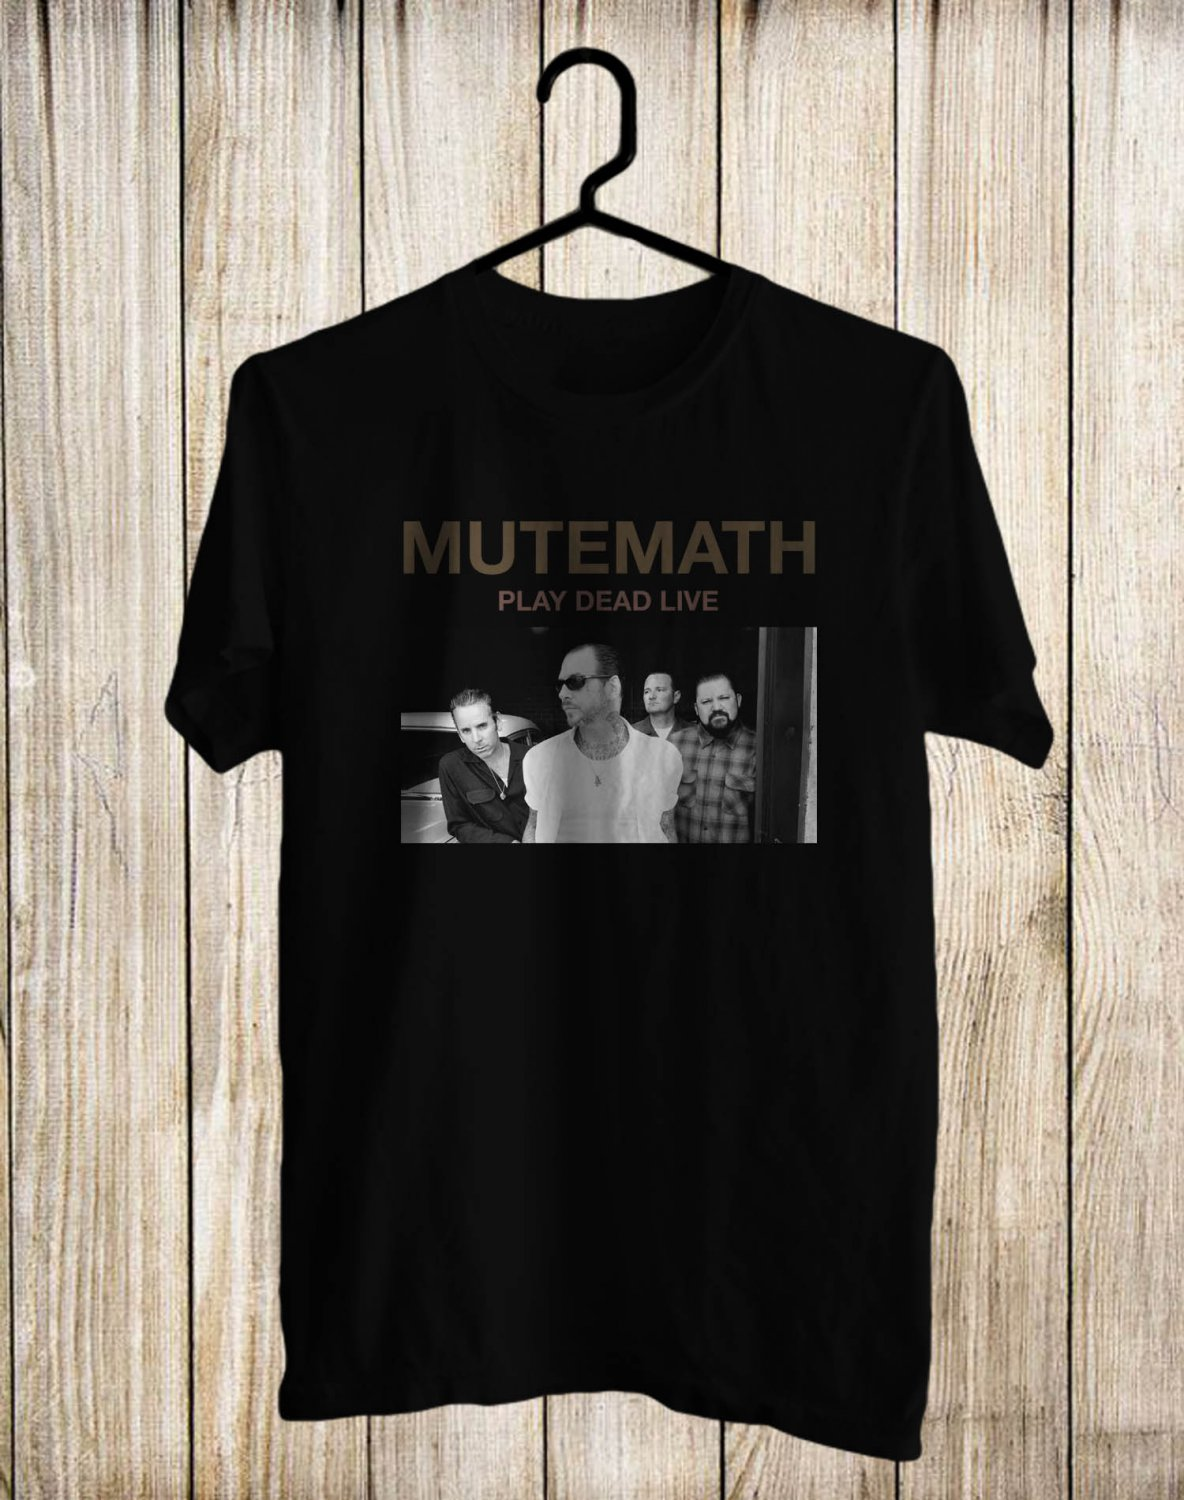 Mutemath Play Dead Alive Tour 2017 Black Tee's Front Side by Complexart